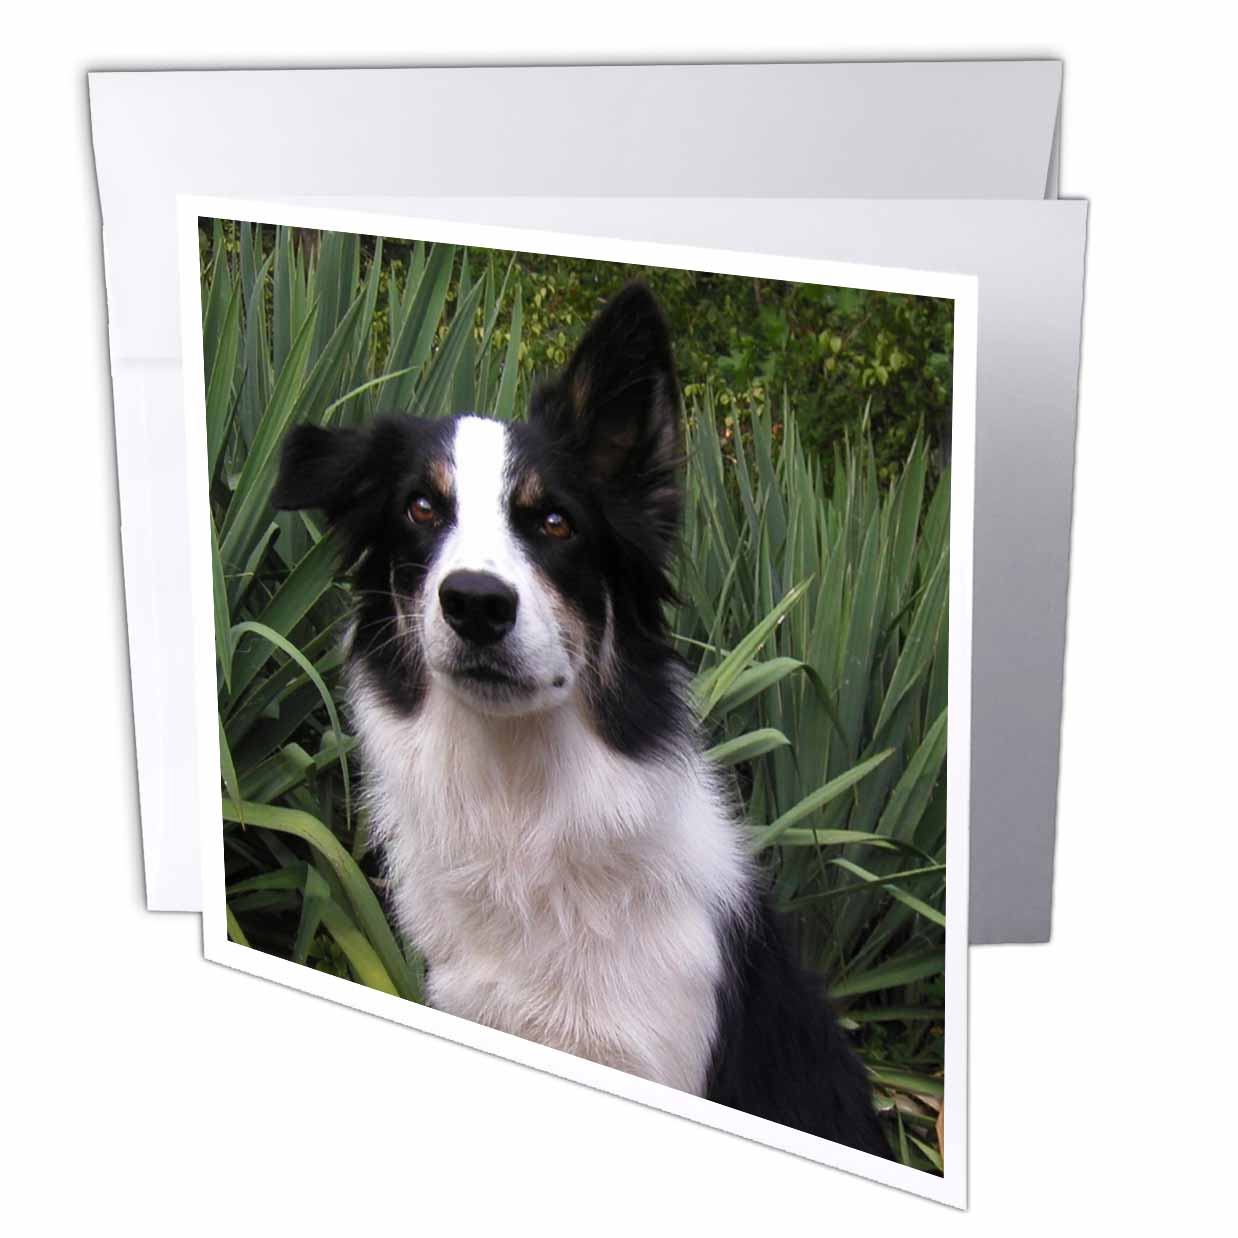 3dRose border collie 2, Greeting Cards, 6 x 6 inches, set of 6